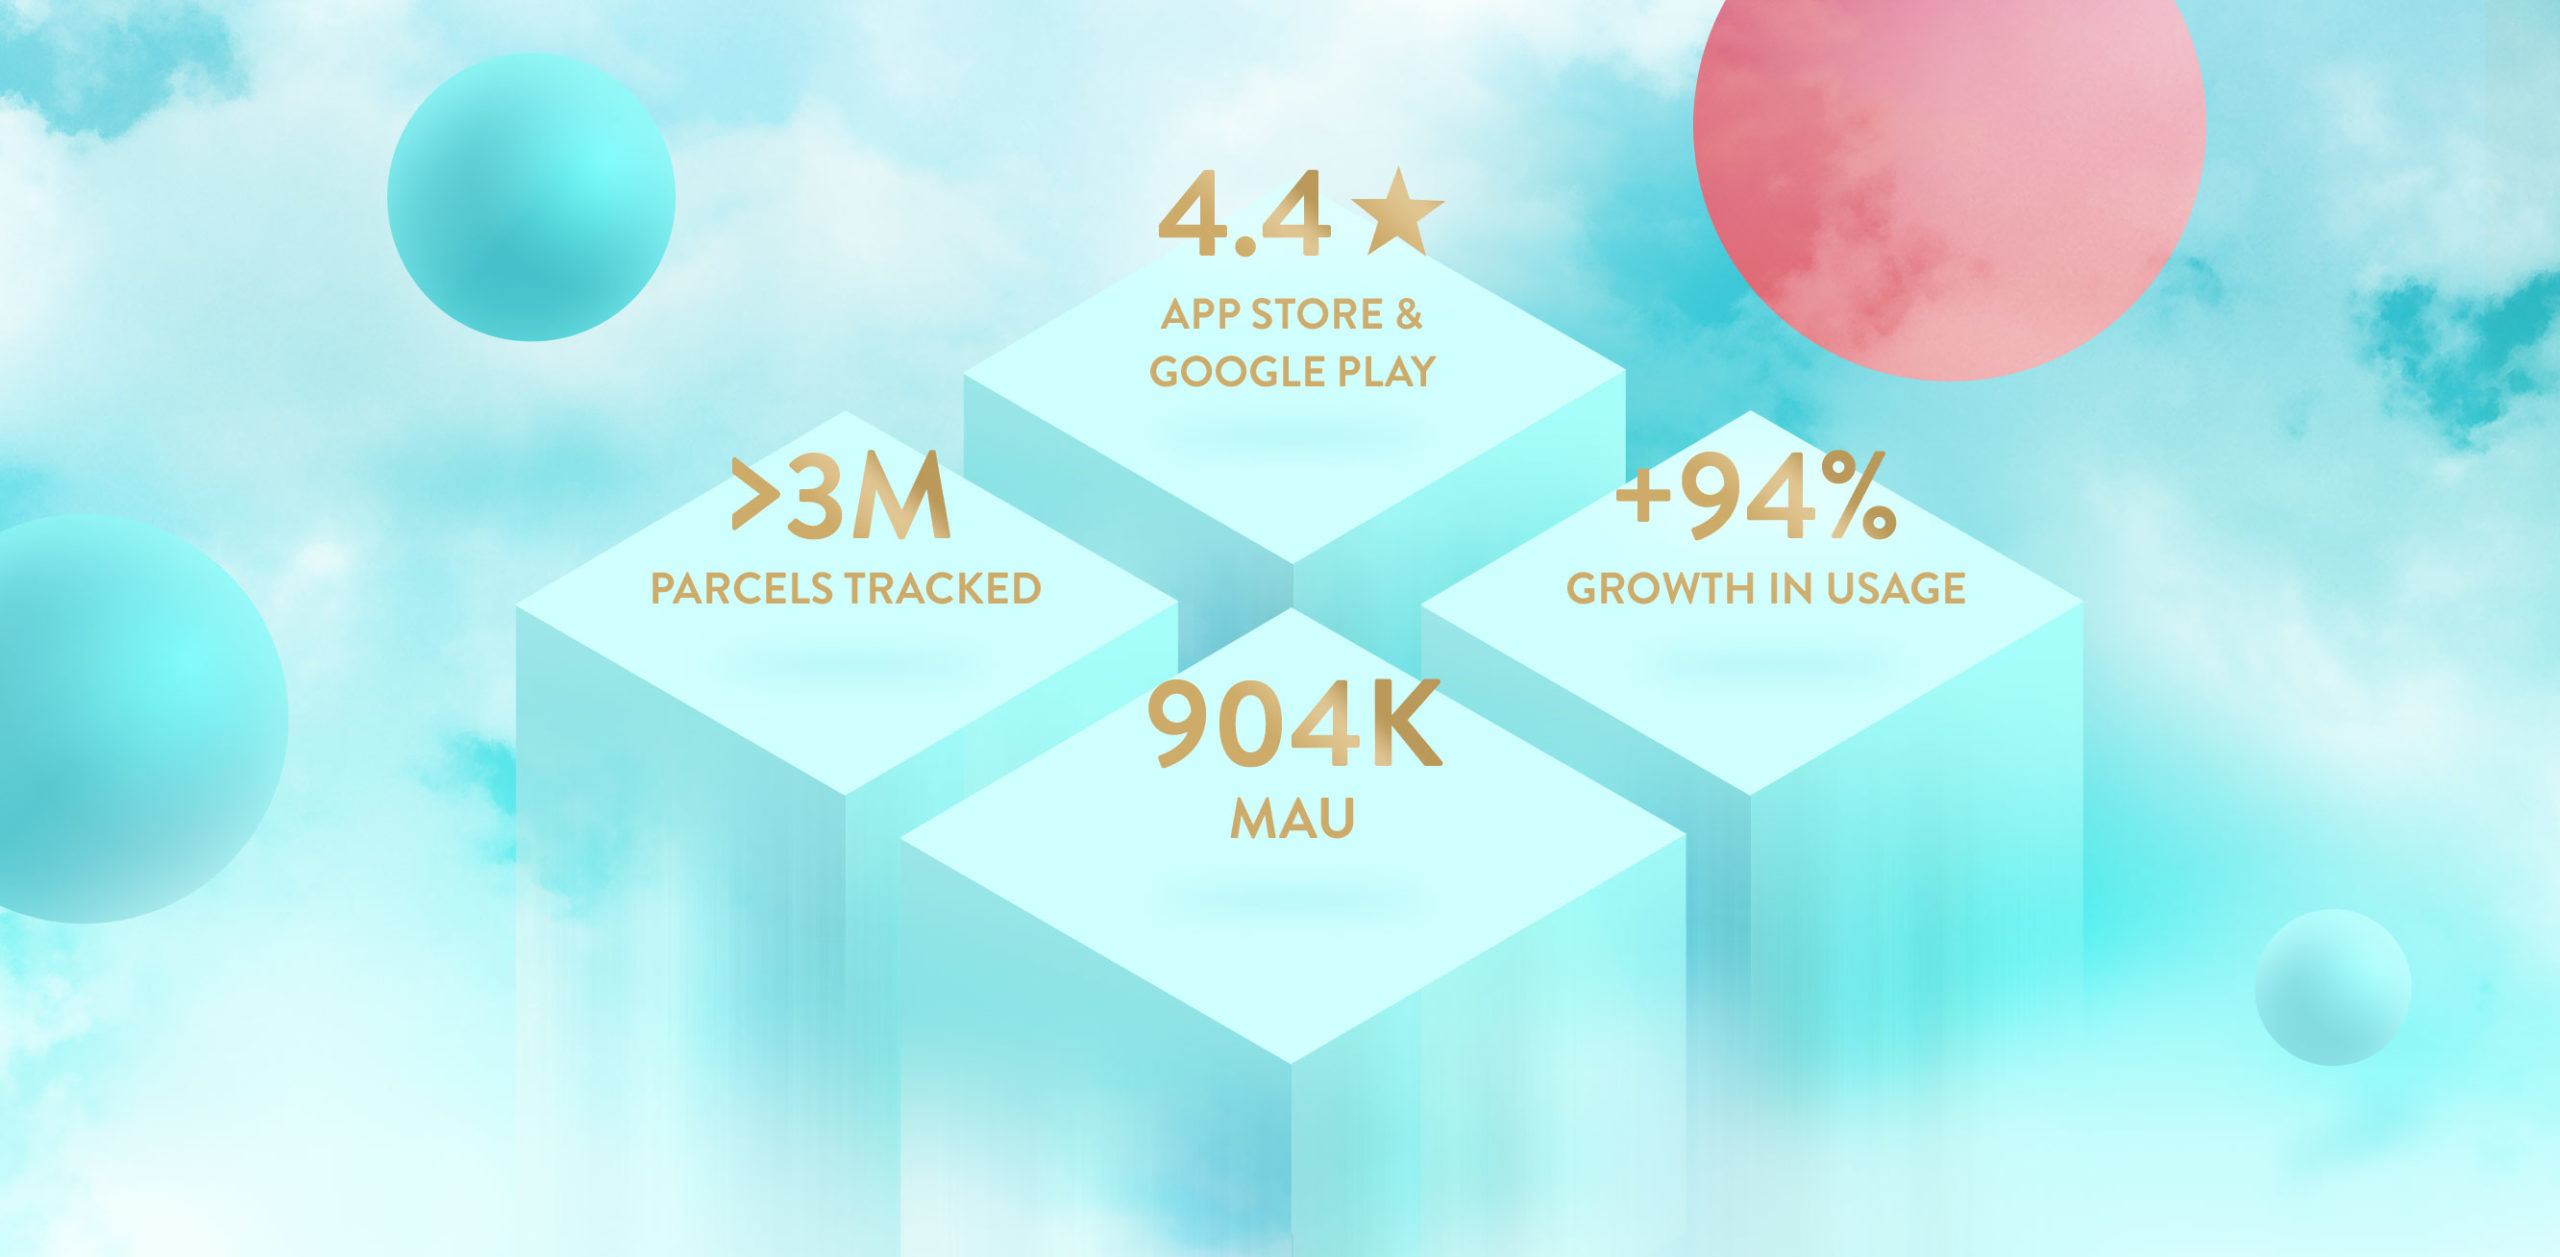 Numbers for the app: Store & Google Play rating 4.4, Over 3 million parcels tracked, Monthly active users 904000 and growth in usage 94%